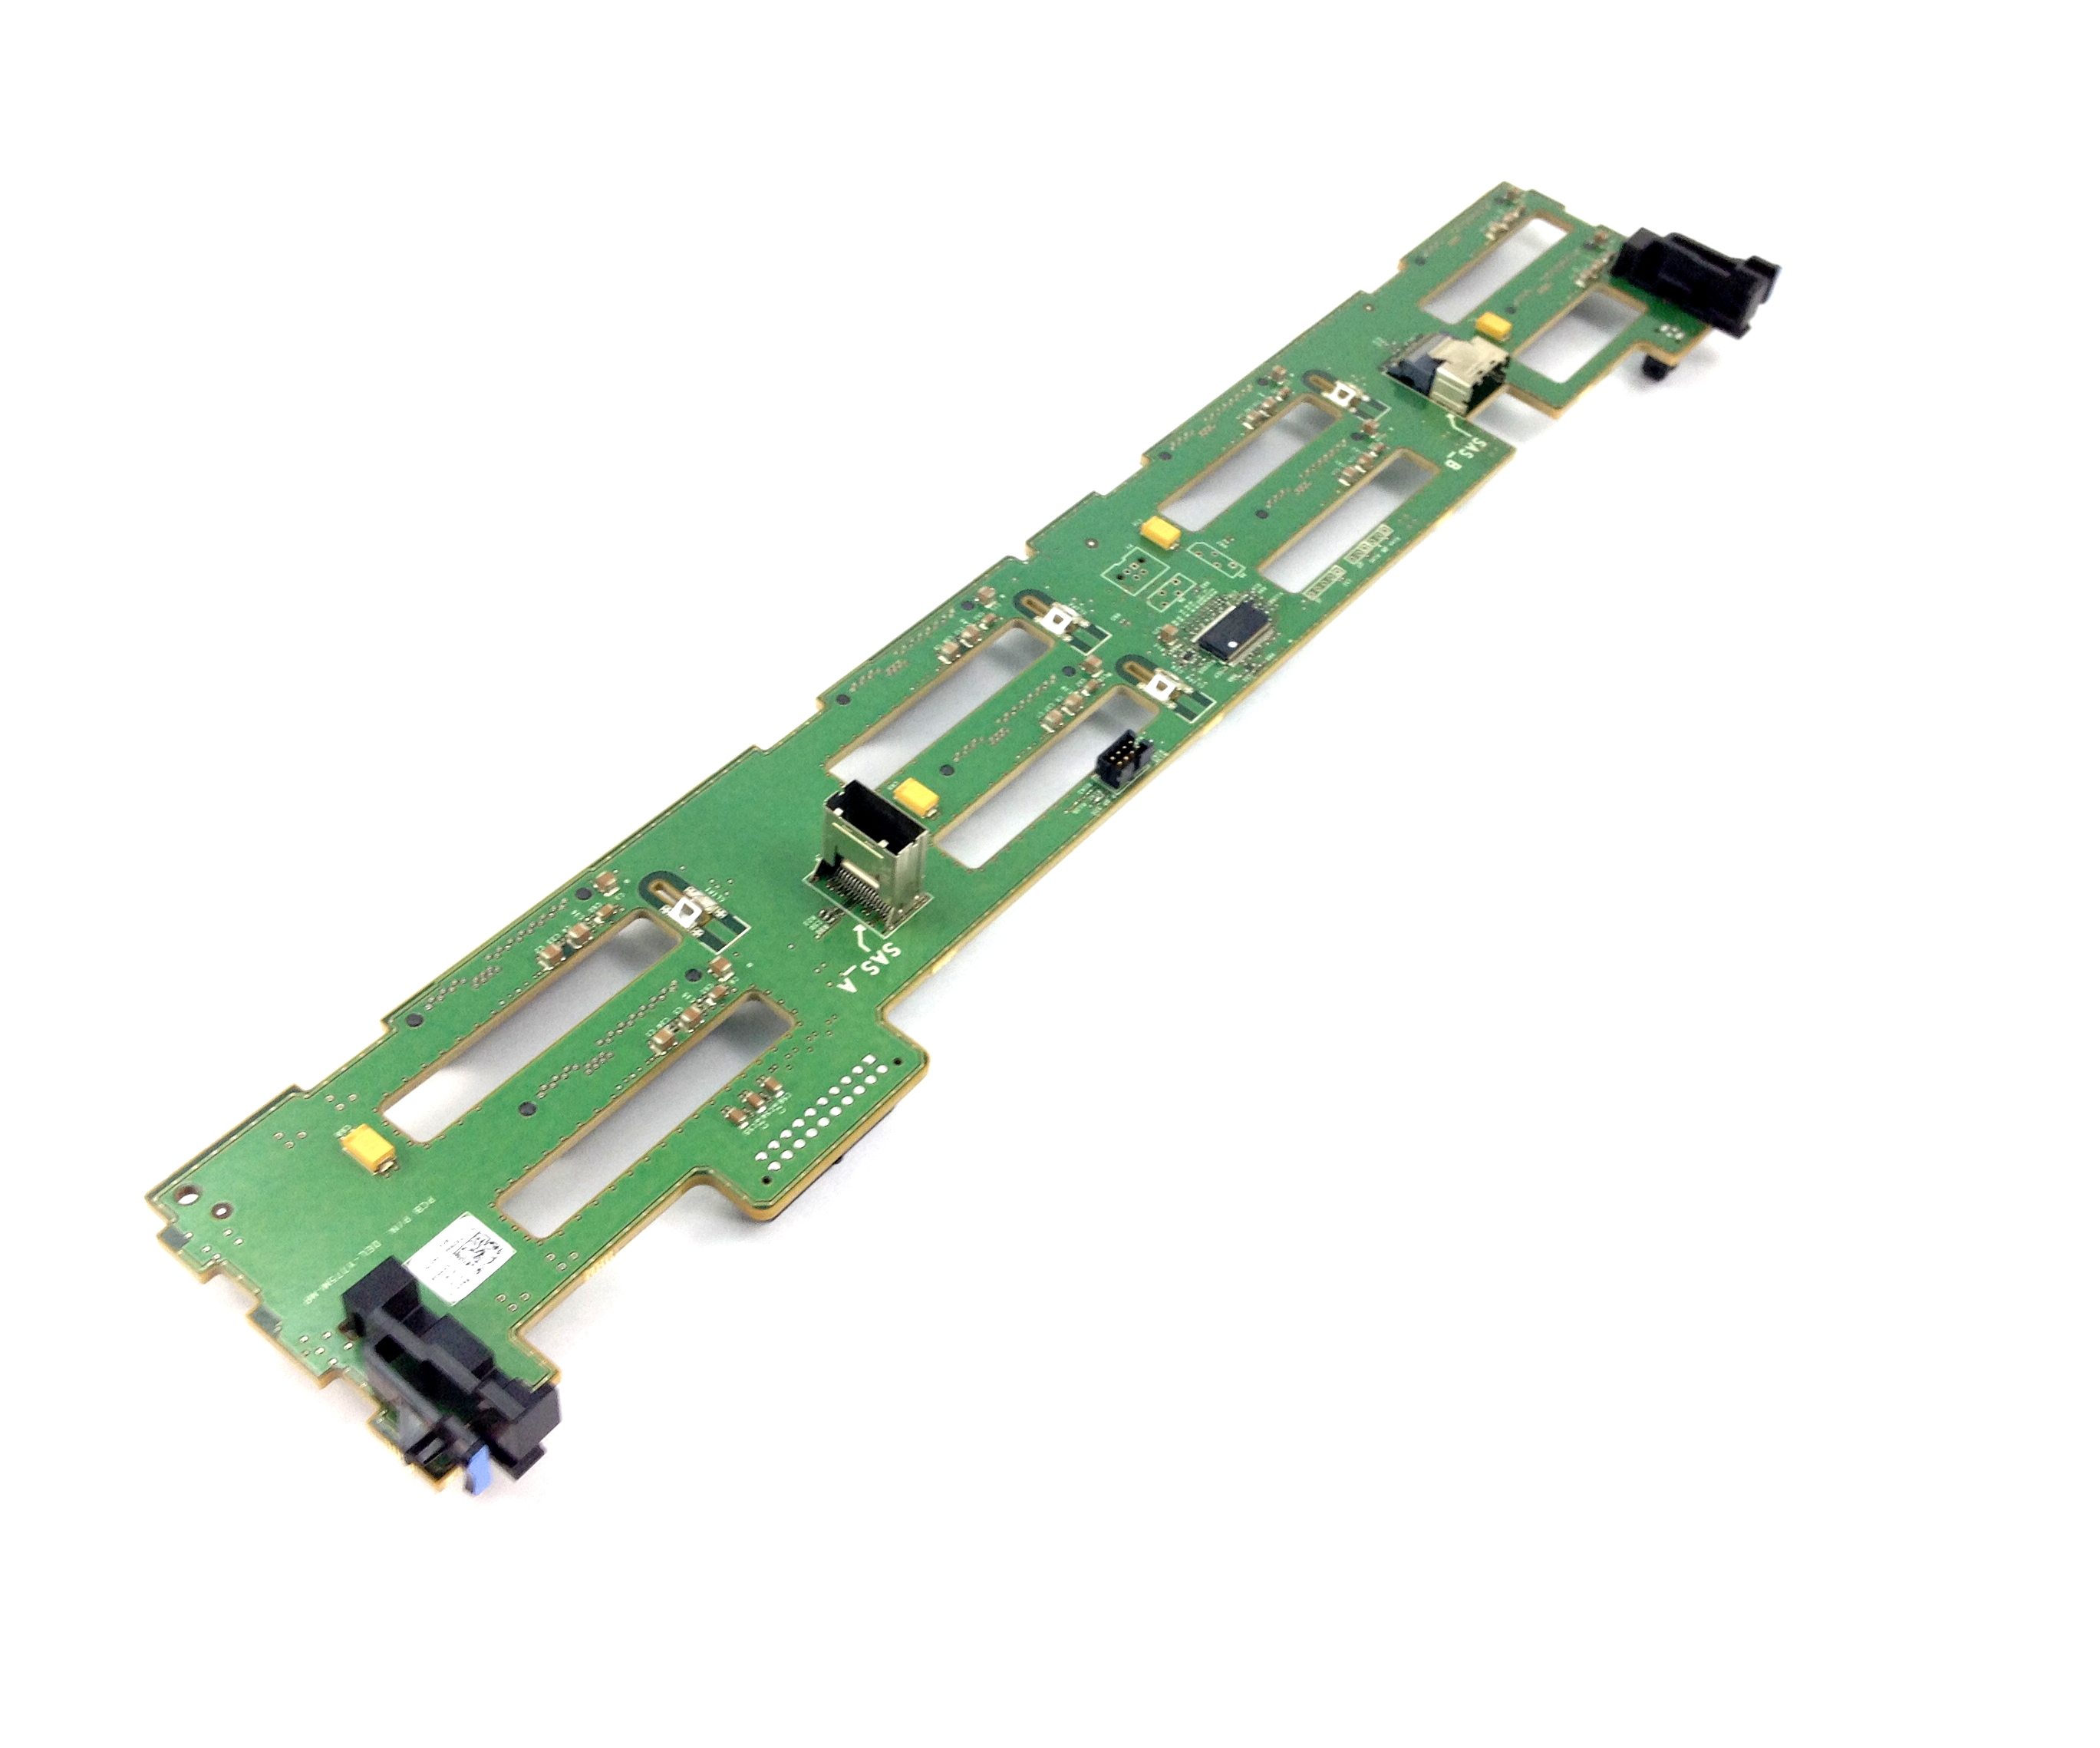 Dell PowerEdge R510 SAS SATA 8 Bay 3.5'' HDD Backplane (X836M)